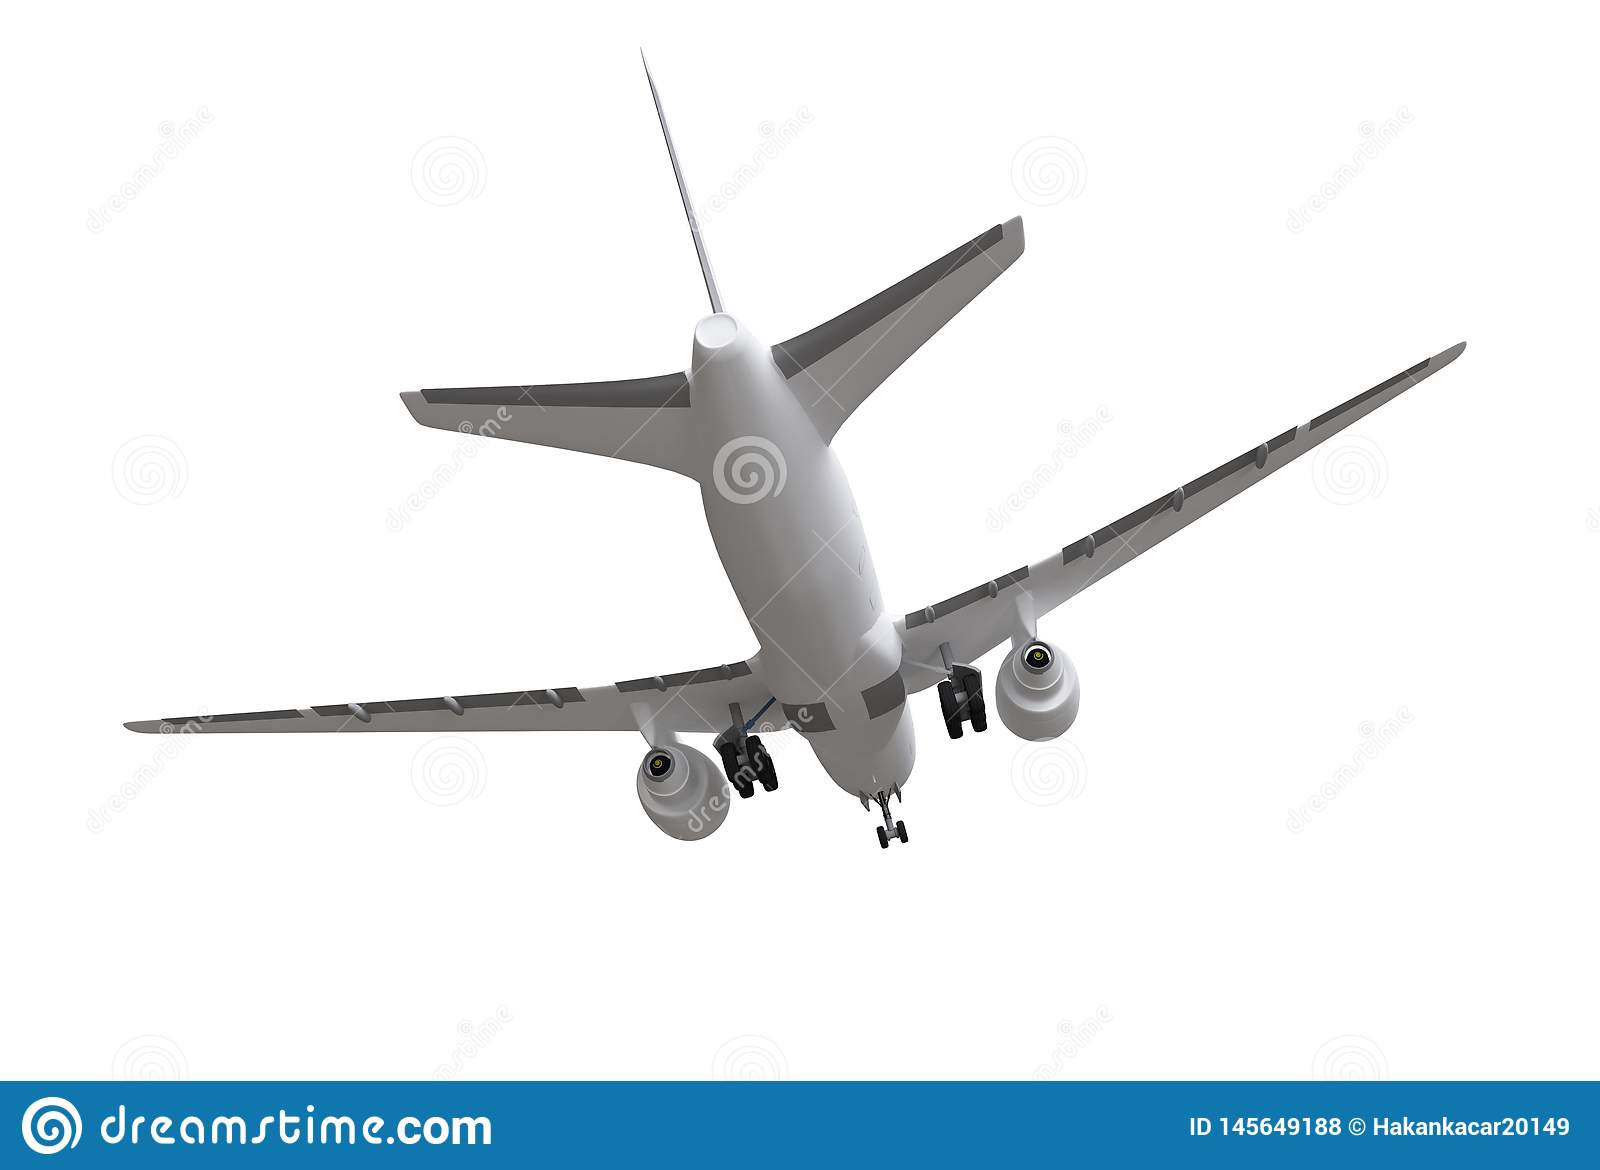 3d rendering. airplane isolated on white background.